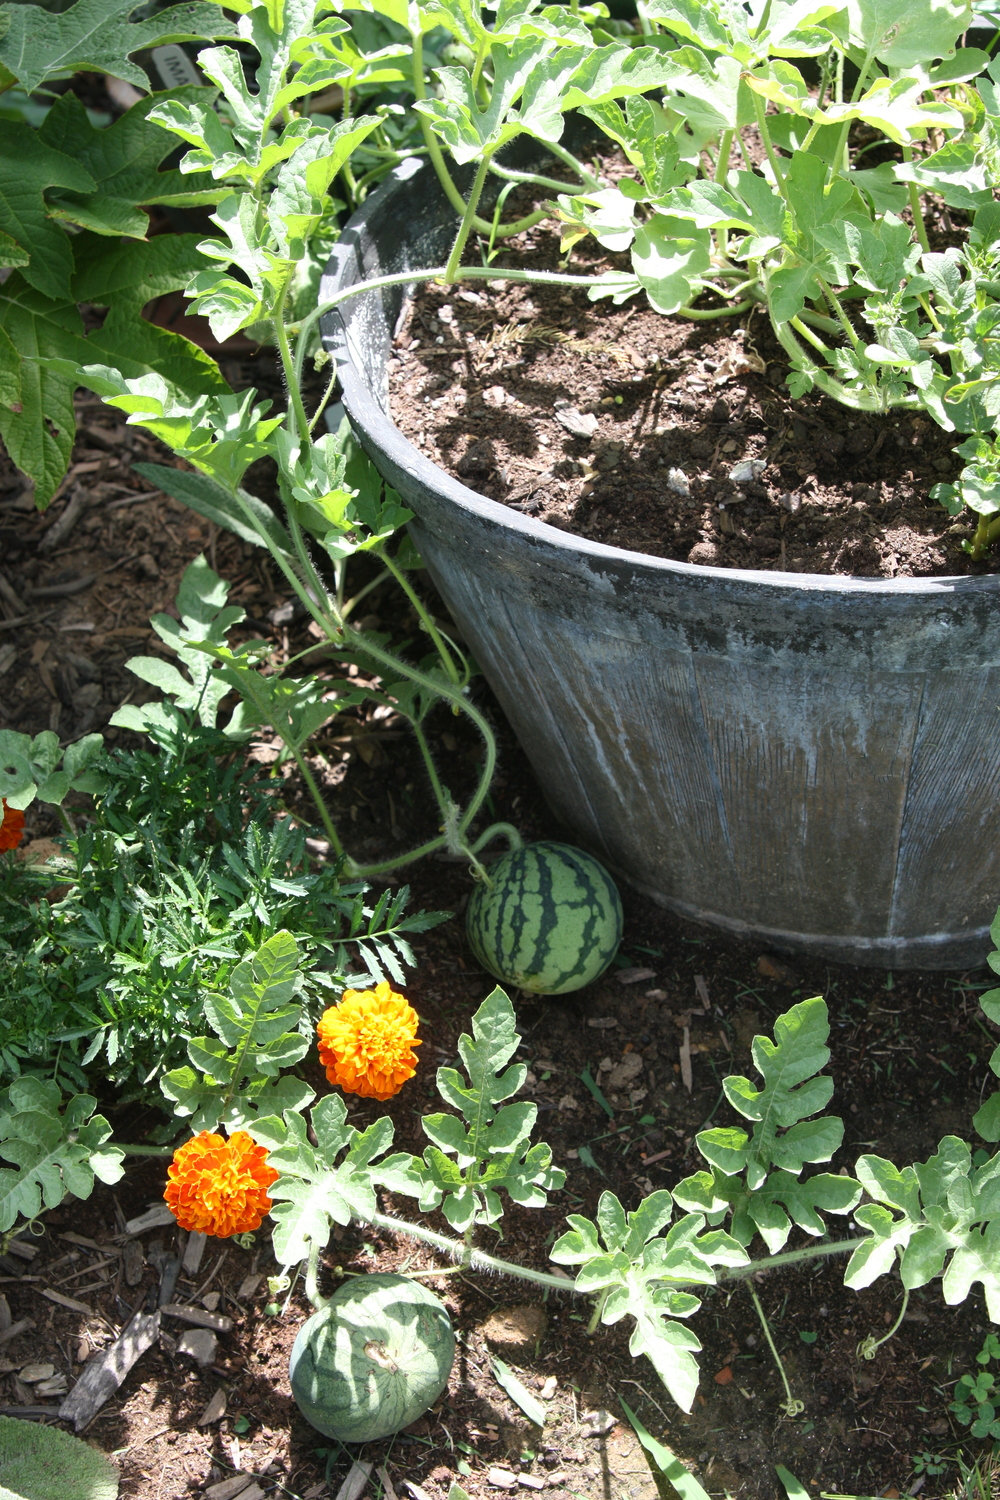 Watermelons growing from our half-barrel pot. Potatoes are growing on the other side.